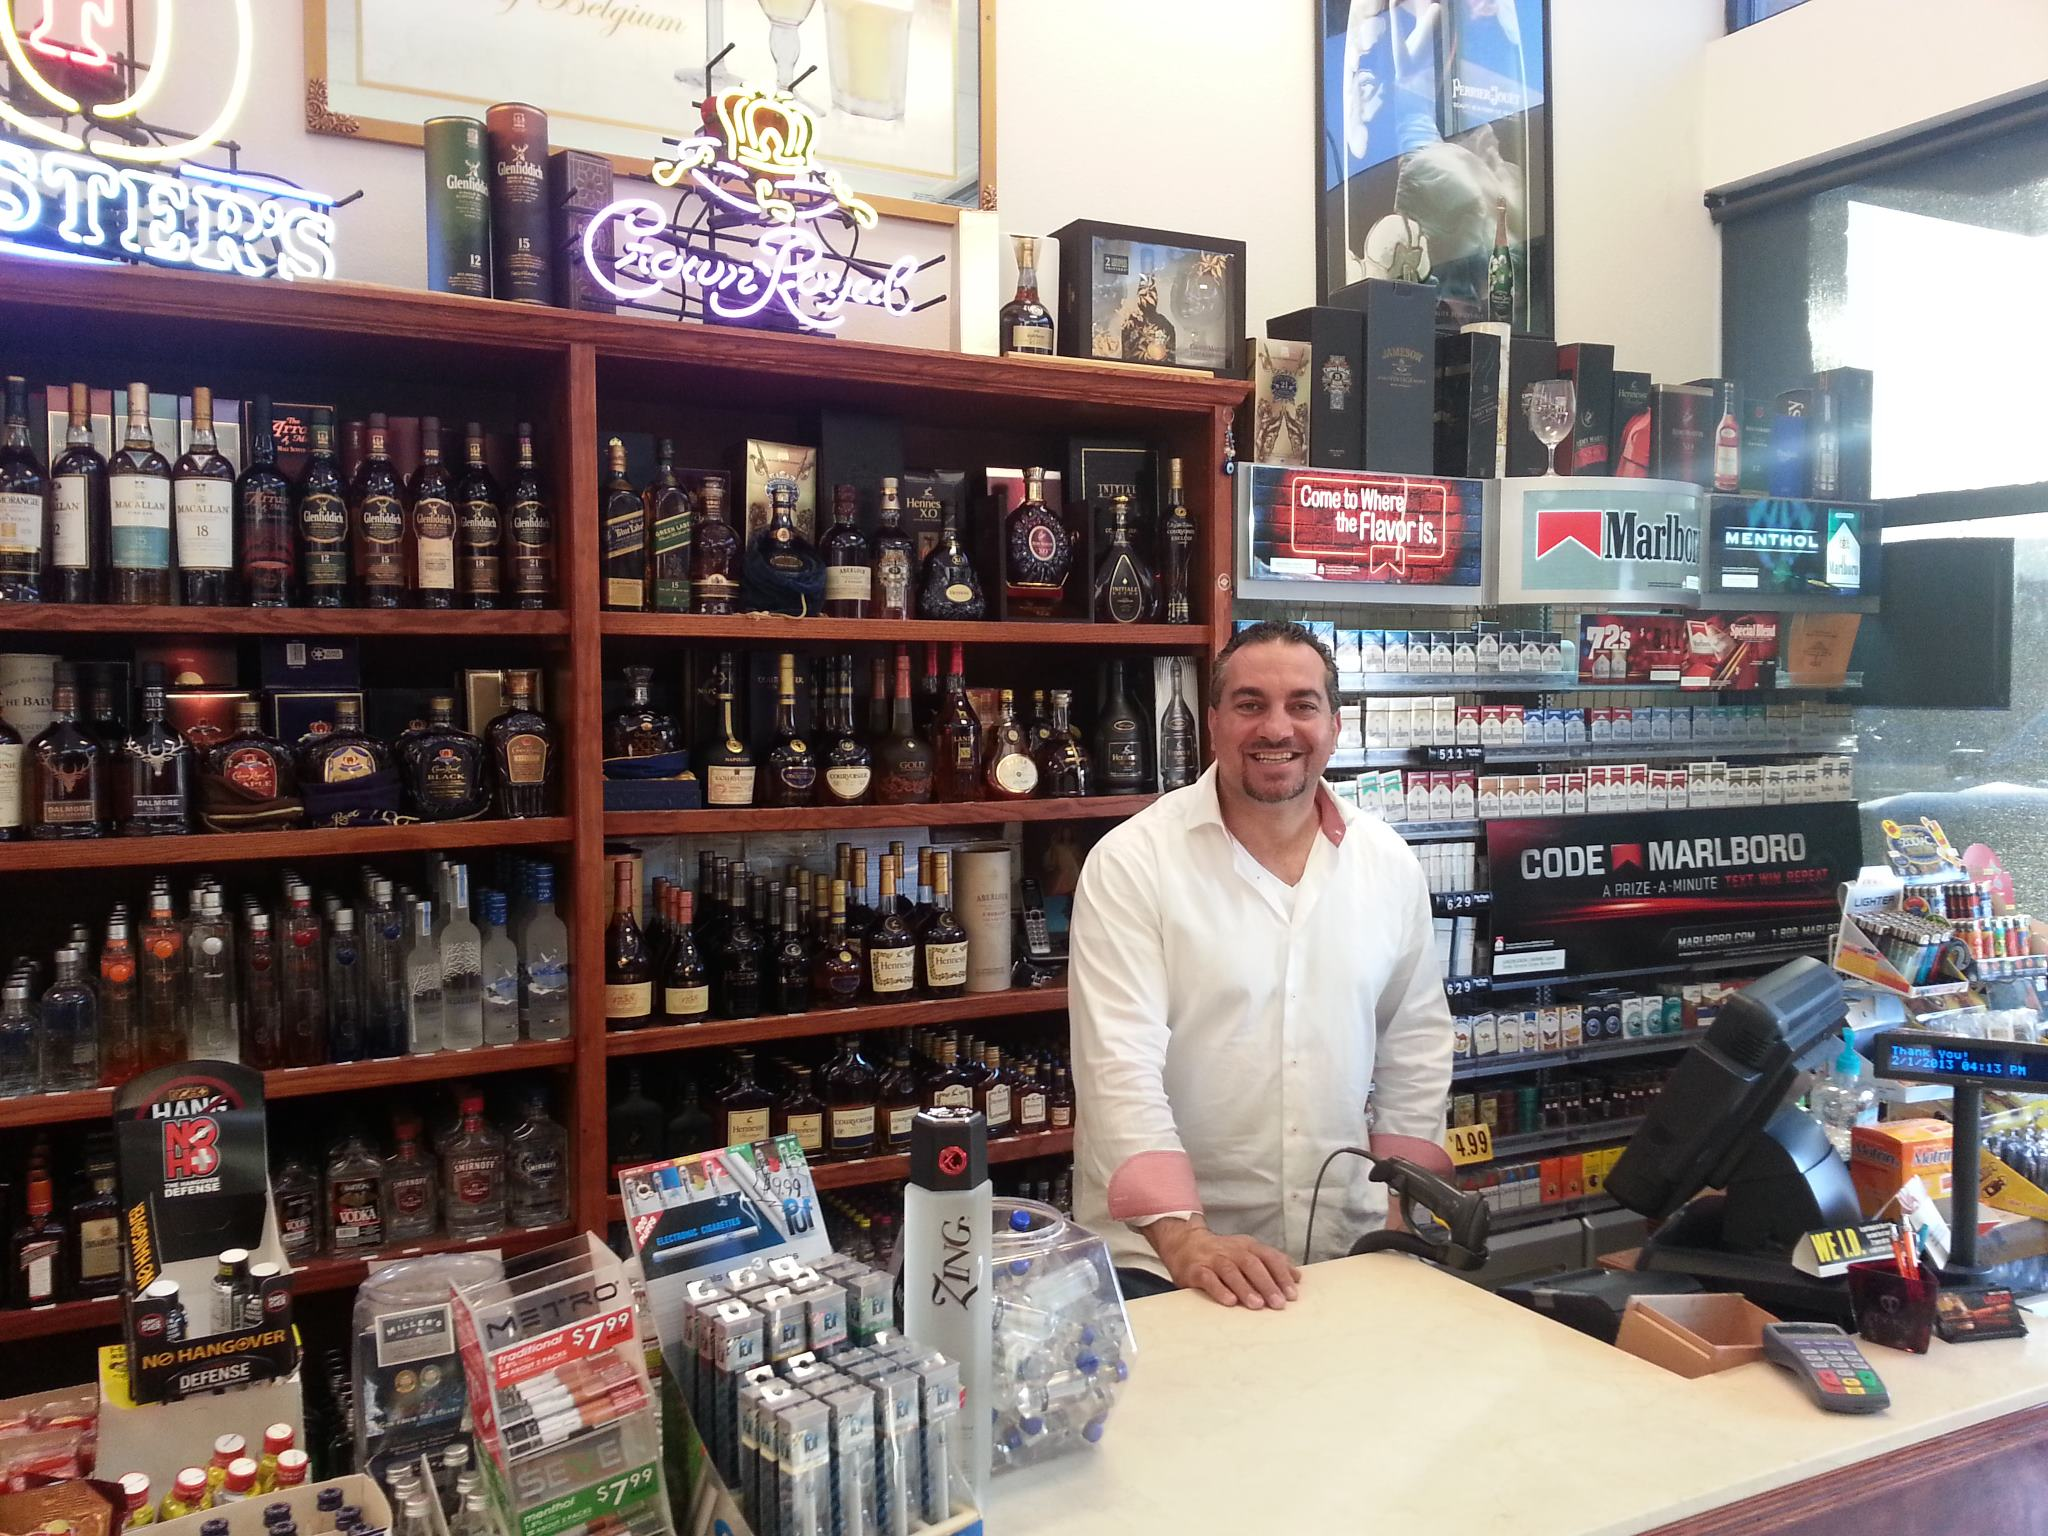 Roy at Counter, Roy's Liquor Store, Summerlin